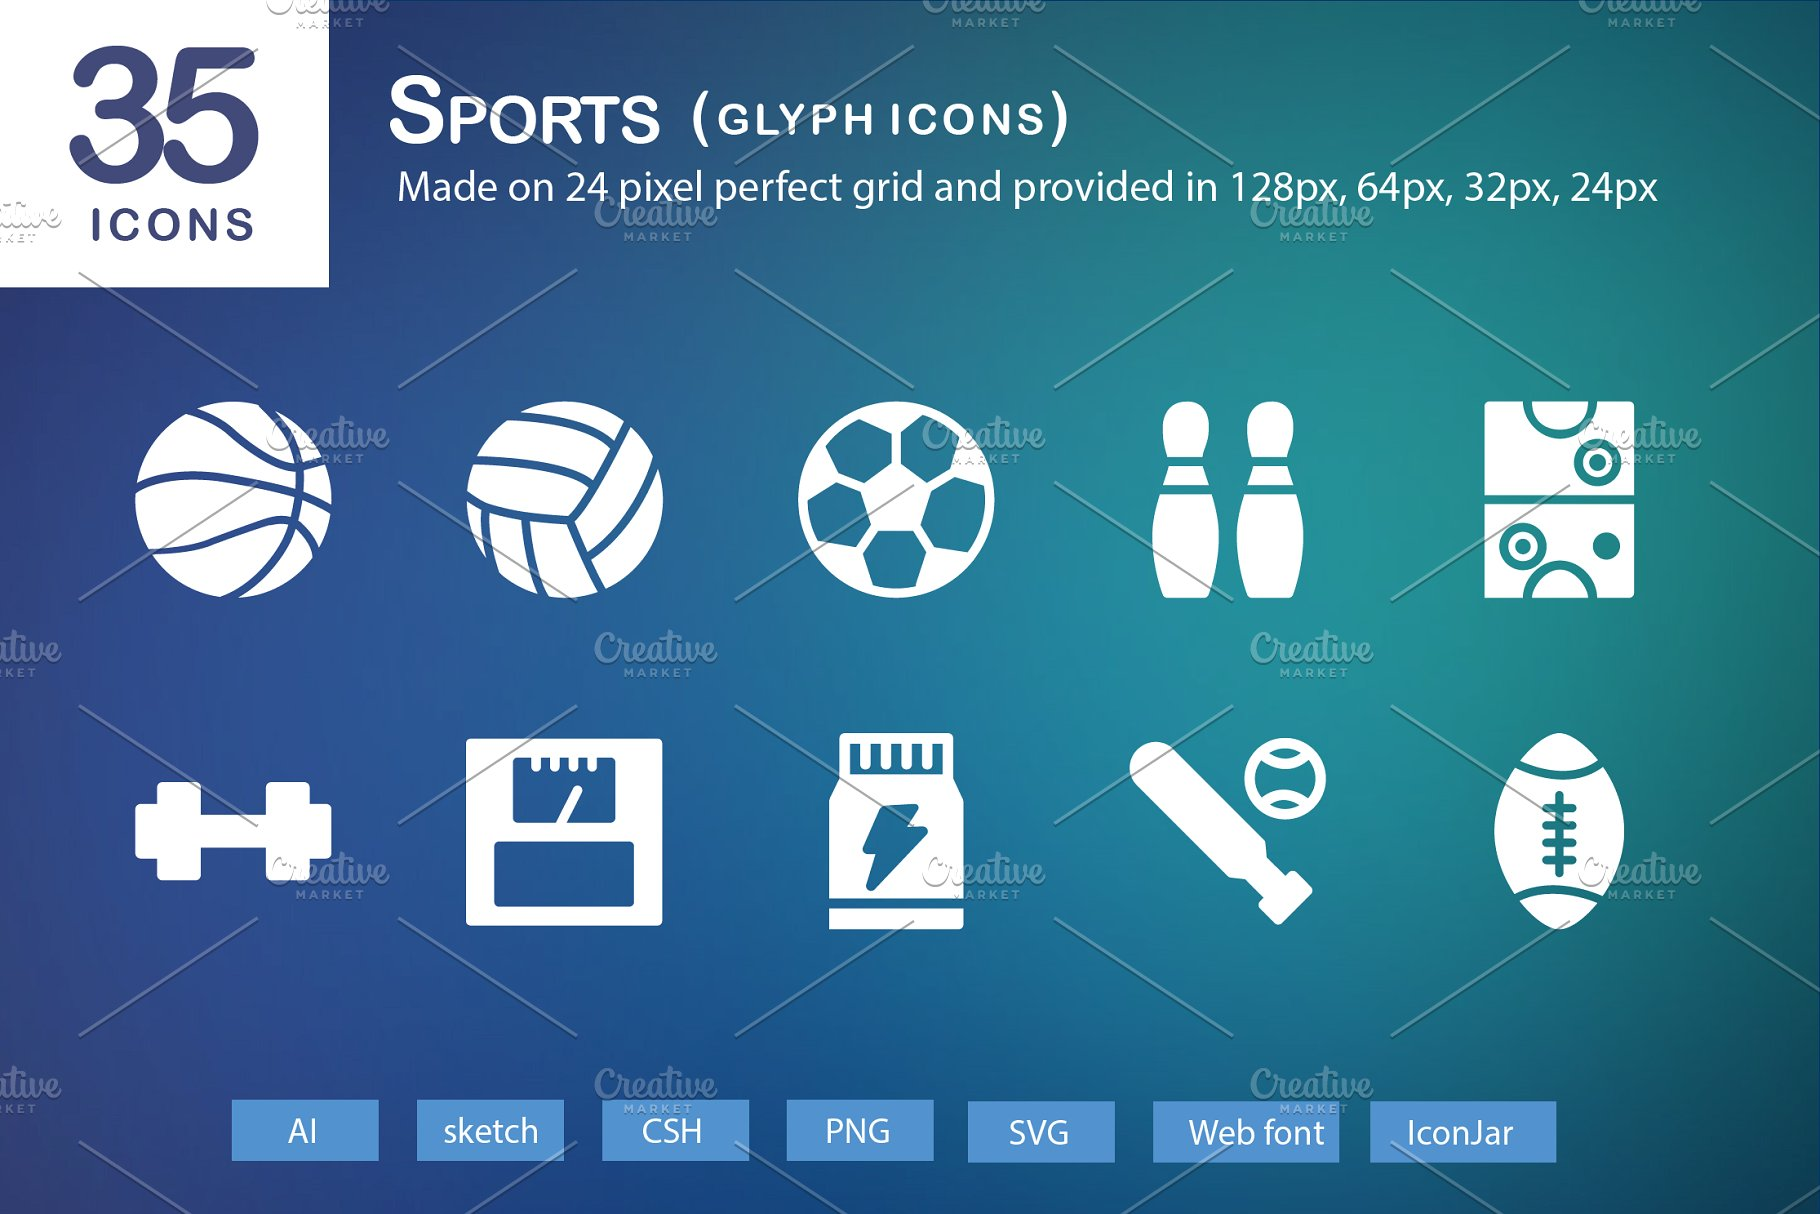 sports-glyph-icons-preview-cover-slide-1